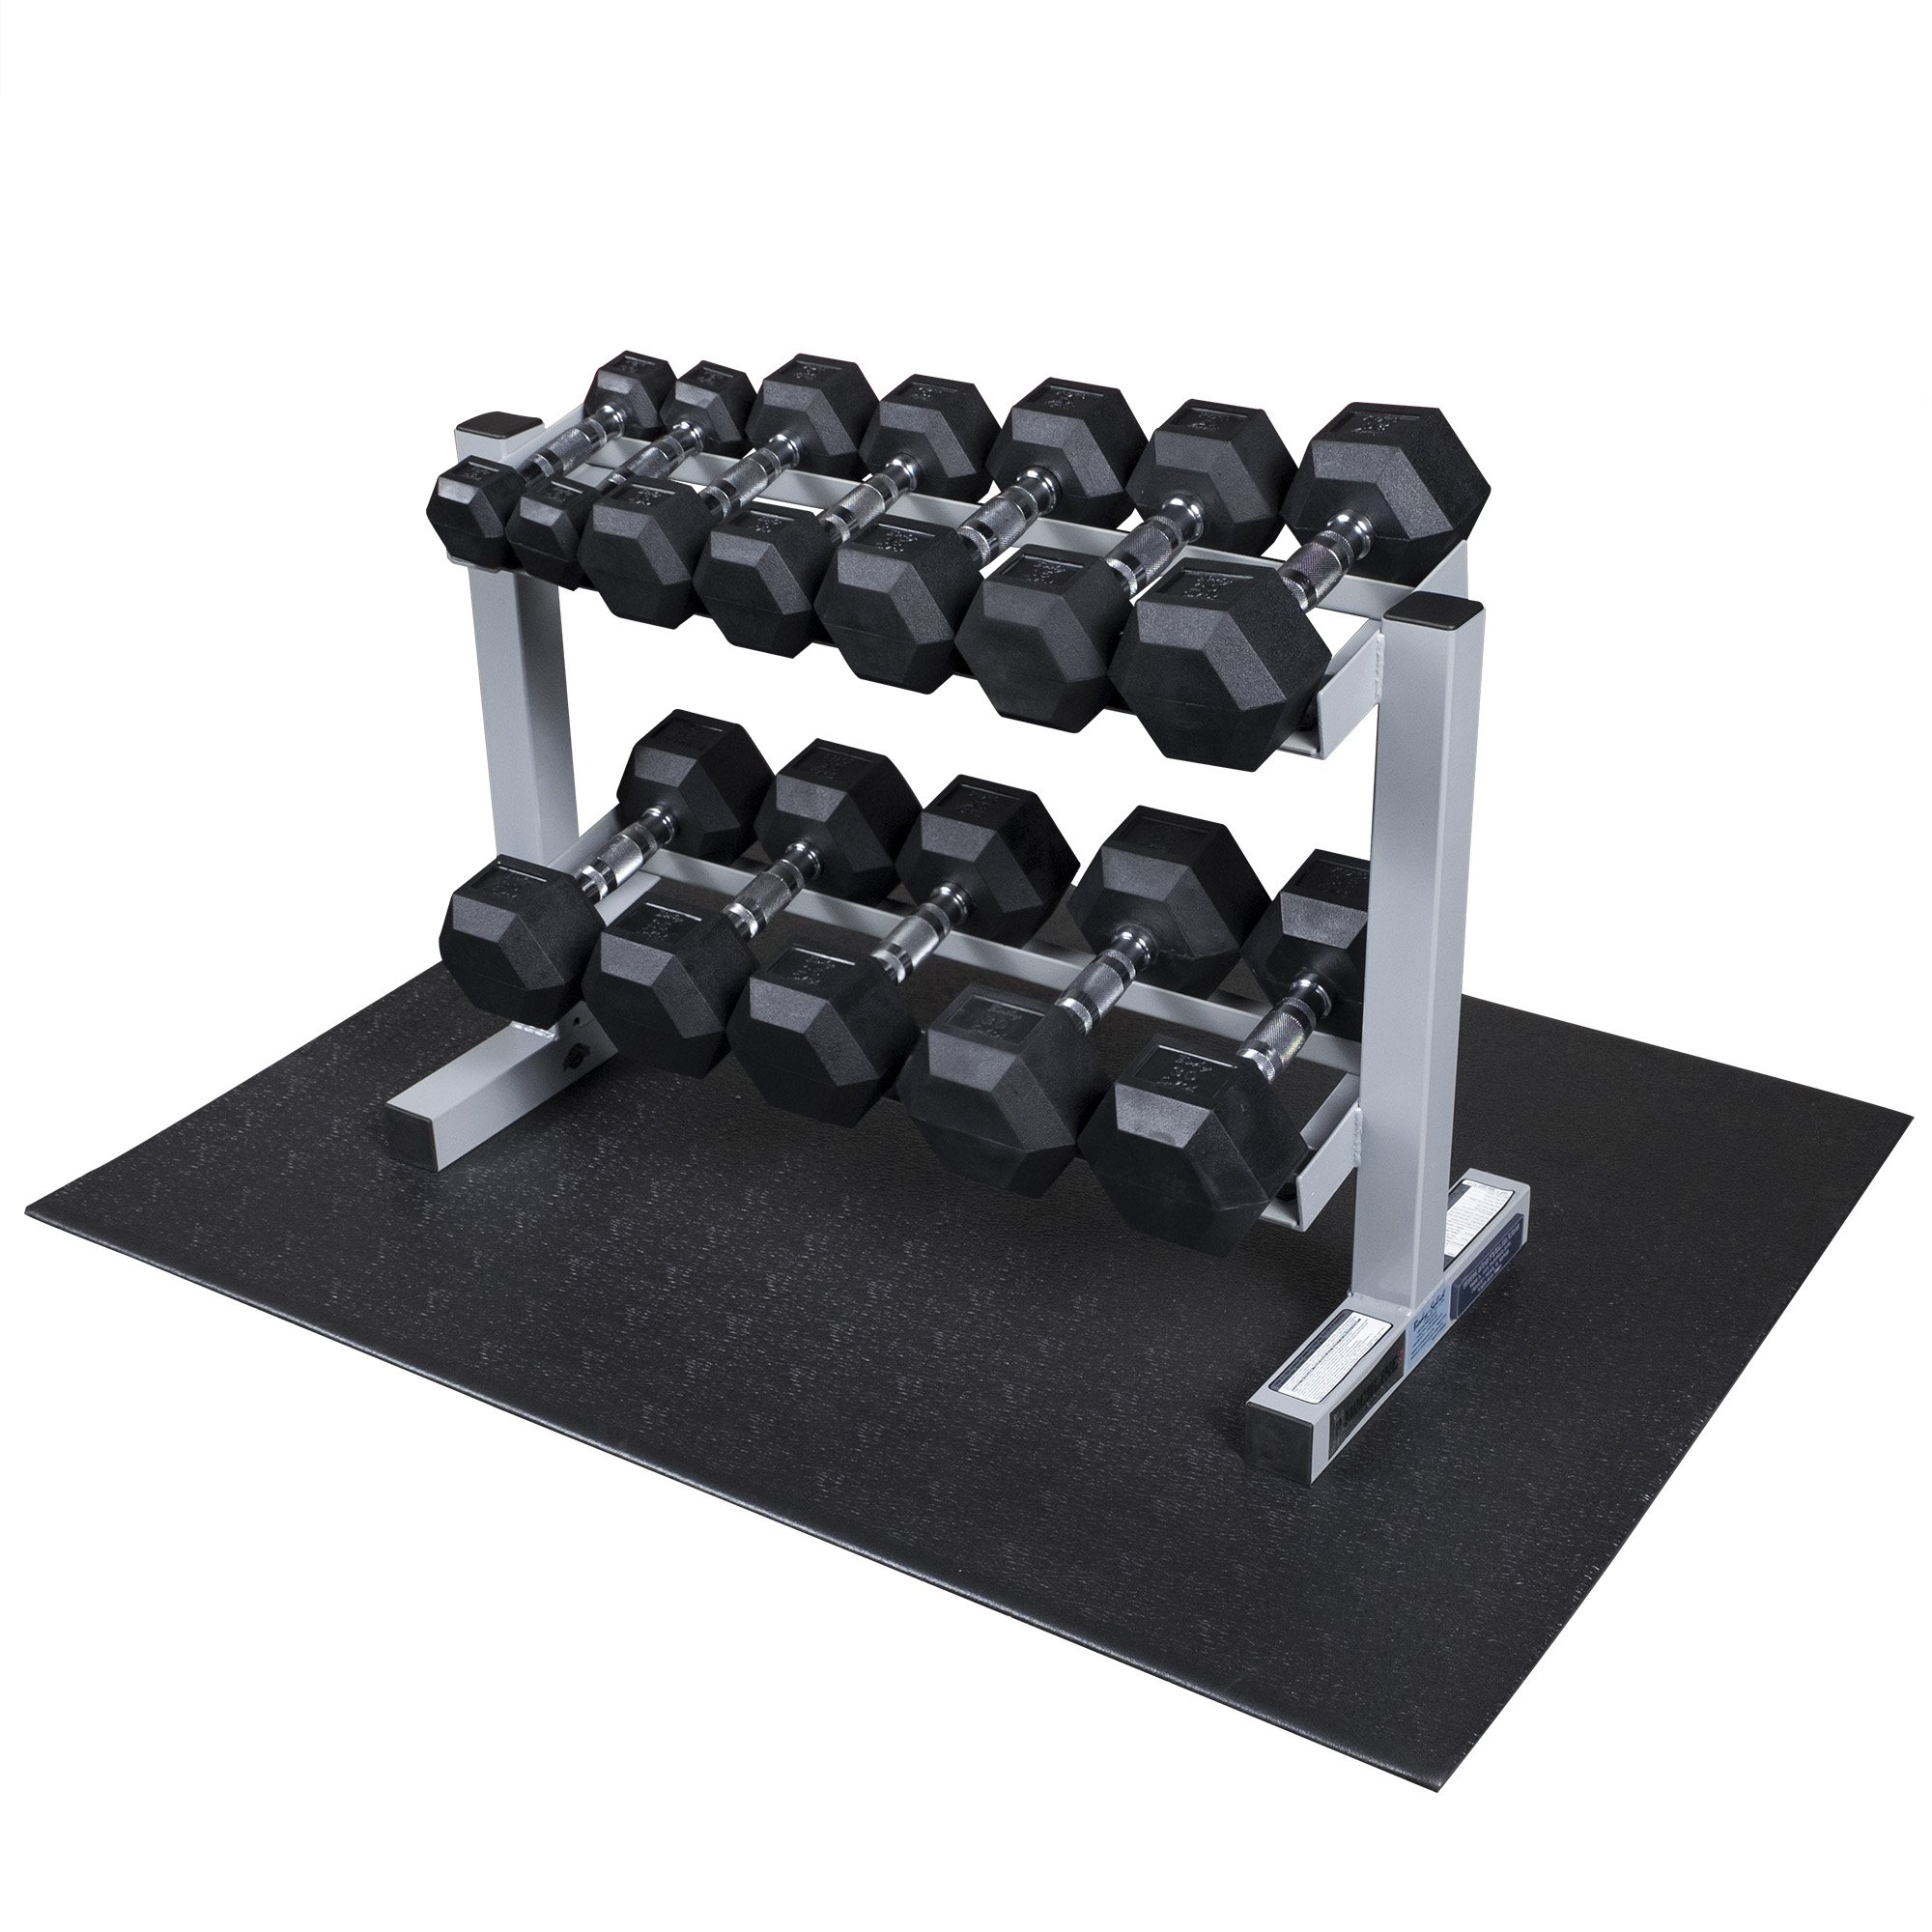 Powerline by Body-Solid 2-Tier Horizontal Dumbbell Rack with Rubber Hex Dumbbells (PDR282X-RFWS) by Body-Solid